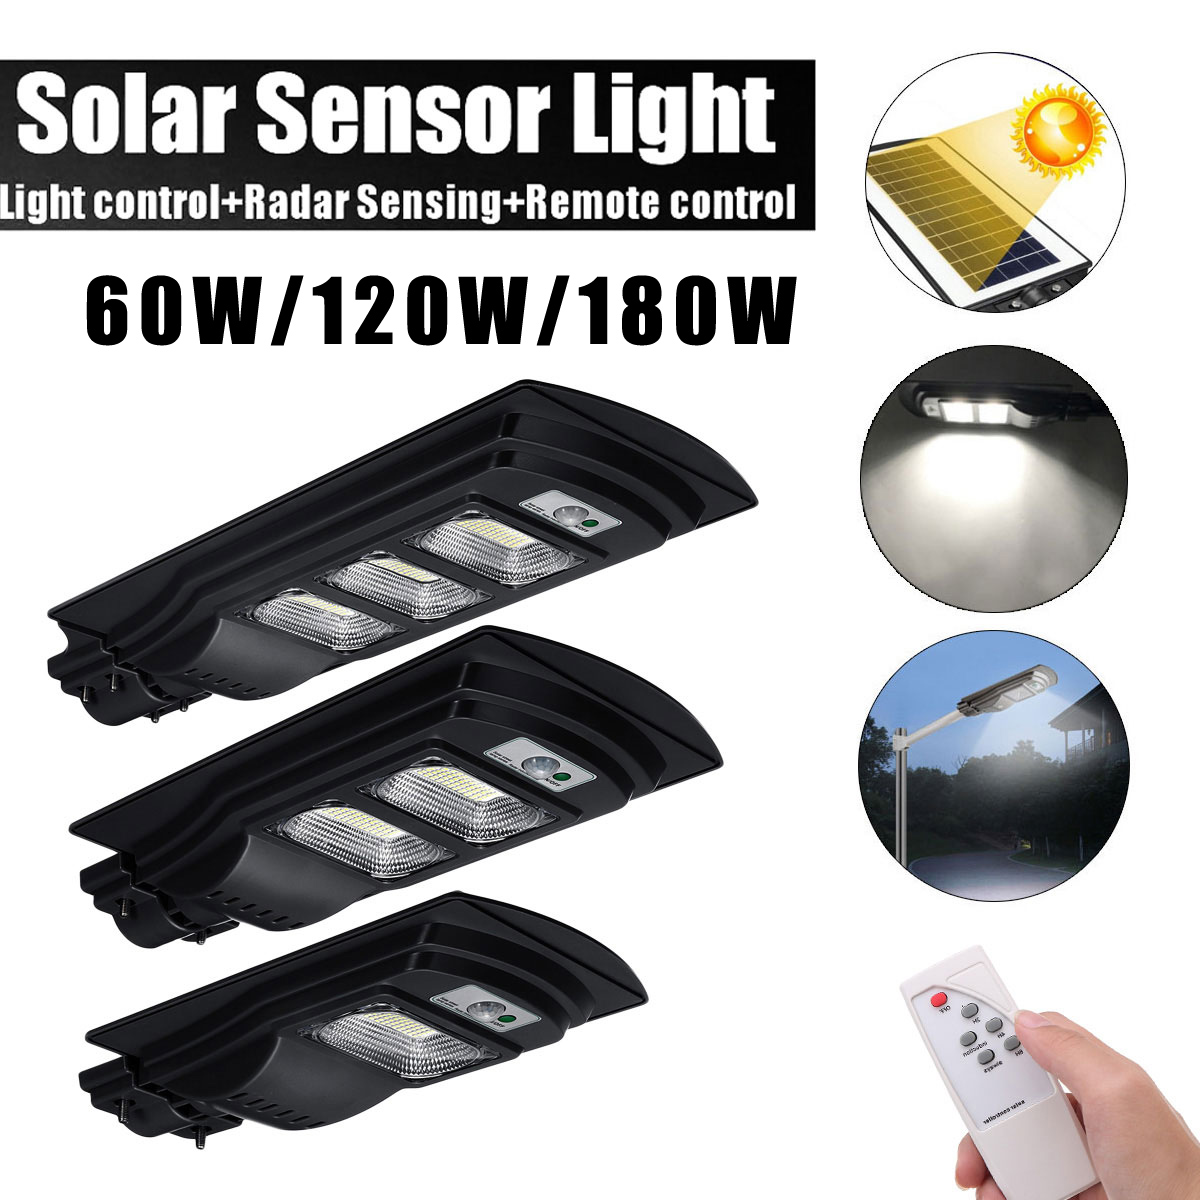 60W/120W/180W LED Solar Street Light Solar Light Radar PIR Motion Sensor Wall Timing Lamp+Remote Comtrol Waterproof For Plaza